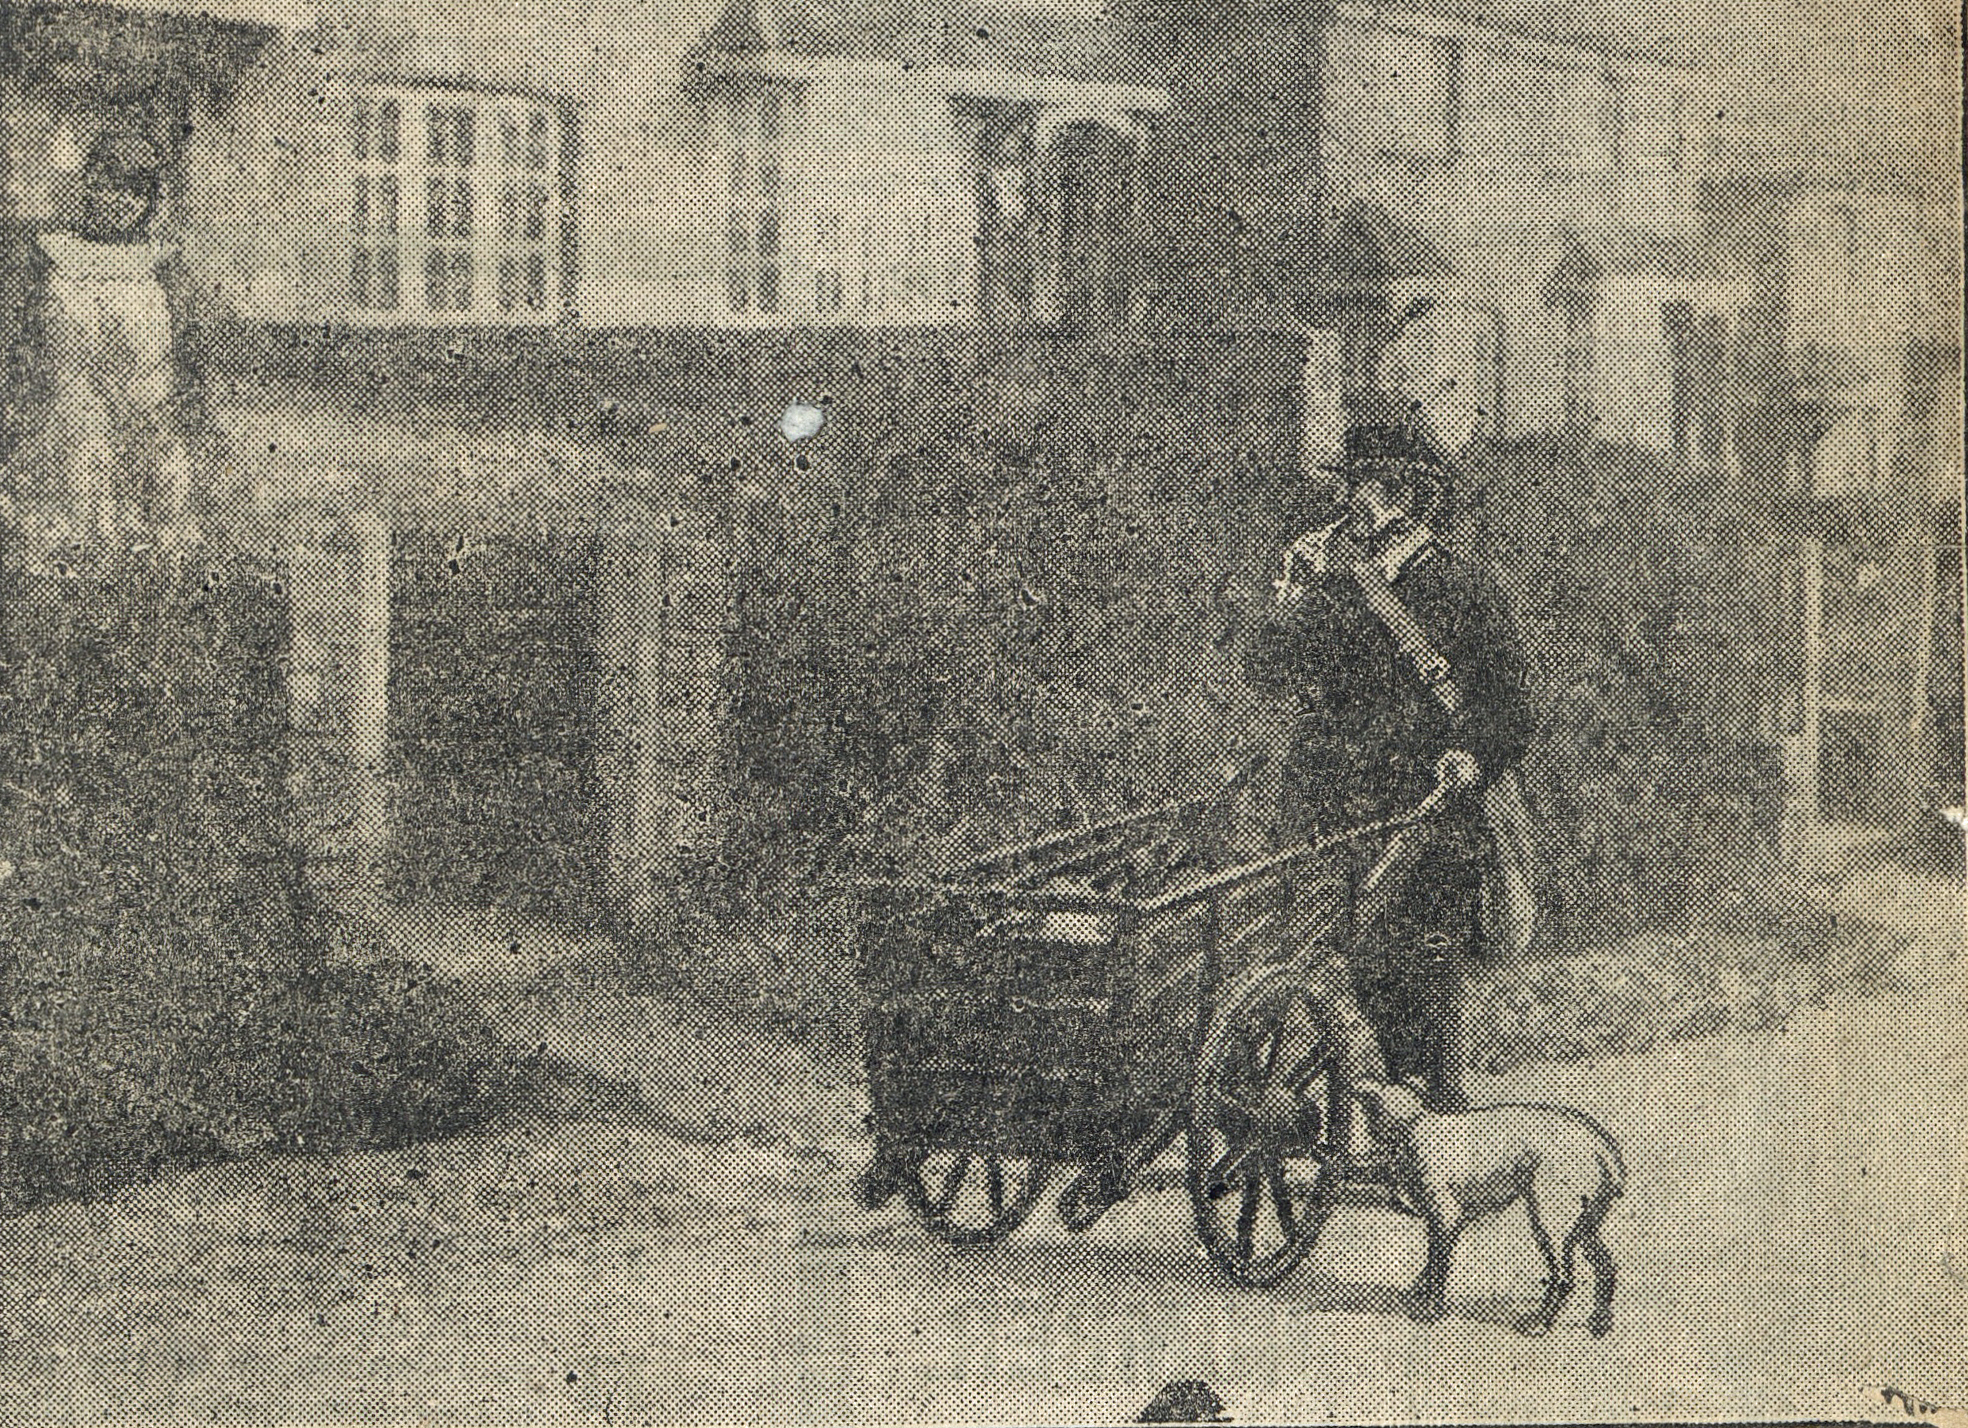 Rural Postman on delivery in Cudworth, Surrey in 1907. Beside collecting and delivering letters, Postmen could also sell stamps and postal orders, and accept telegrams and bank deposits. On entering the village he would blow on his whistle to alert the public to his presence. Unknown publication. (POST 111/60)